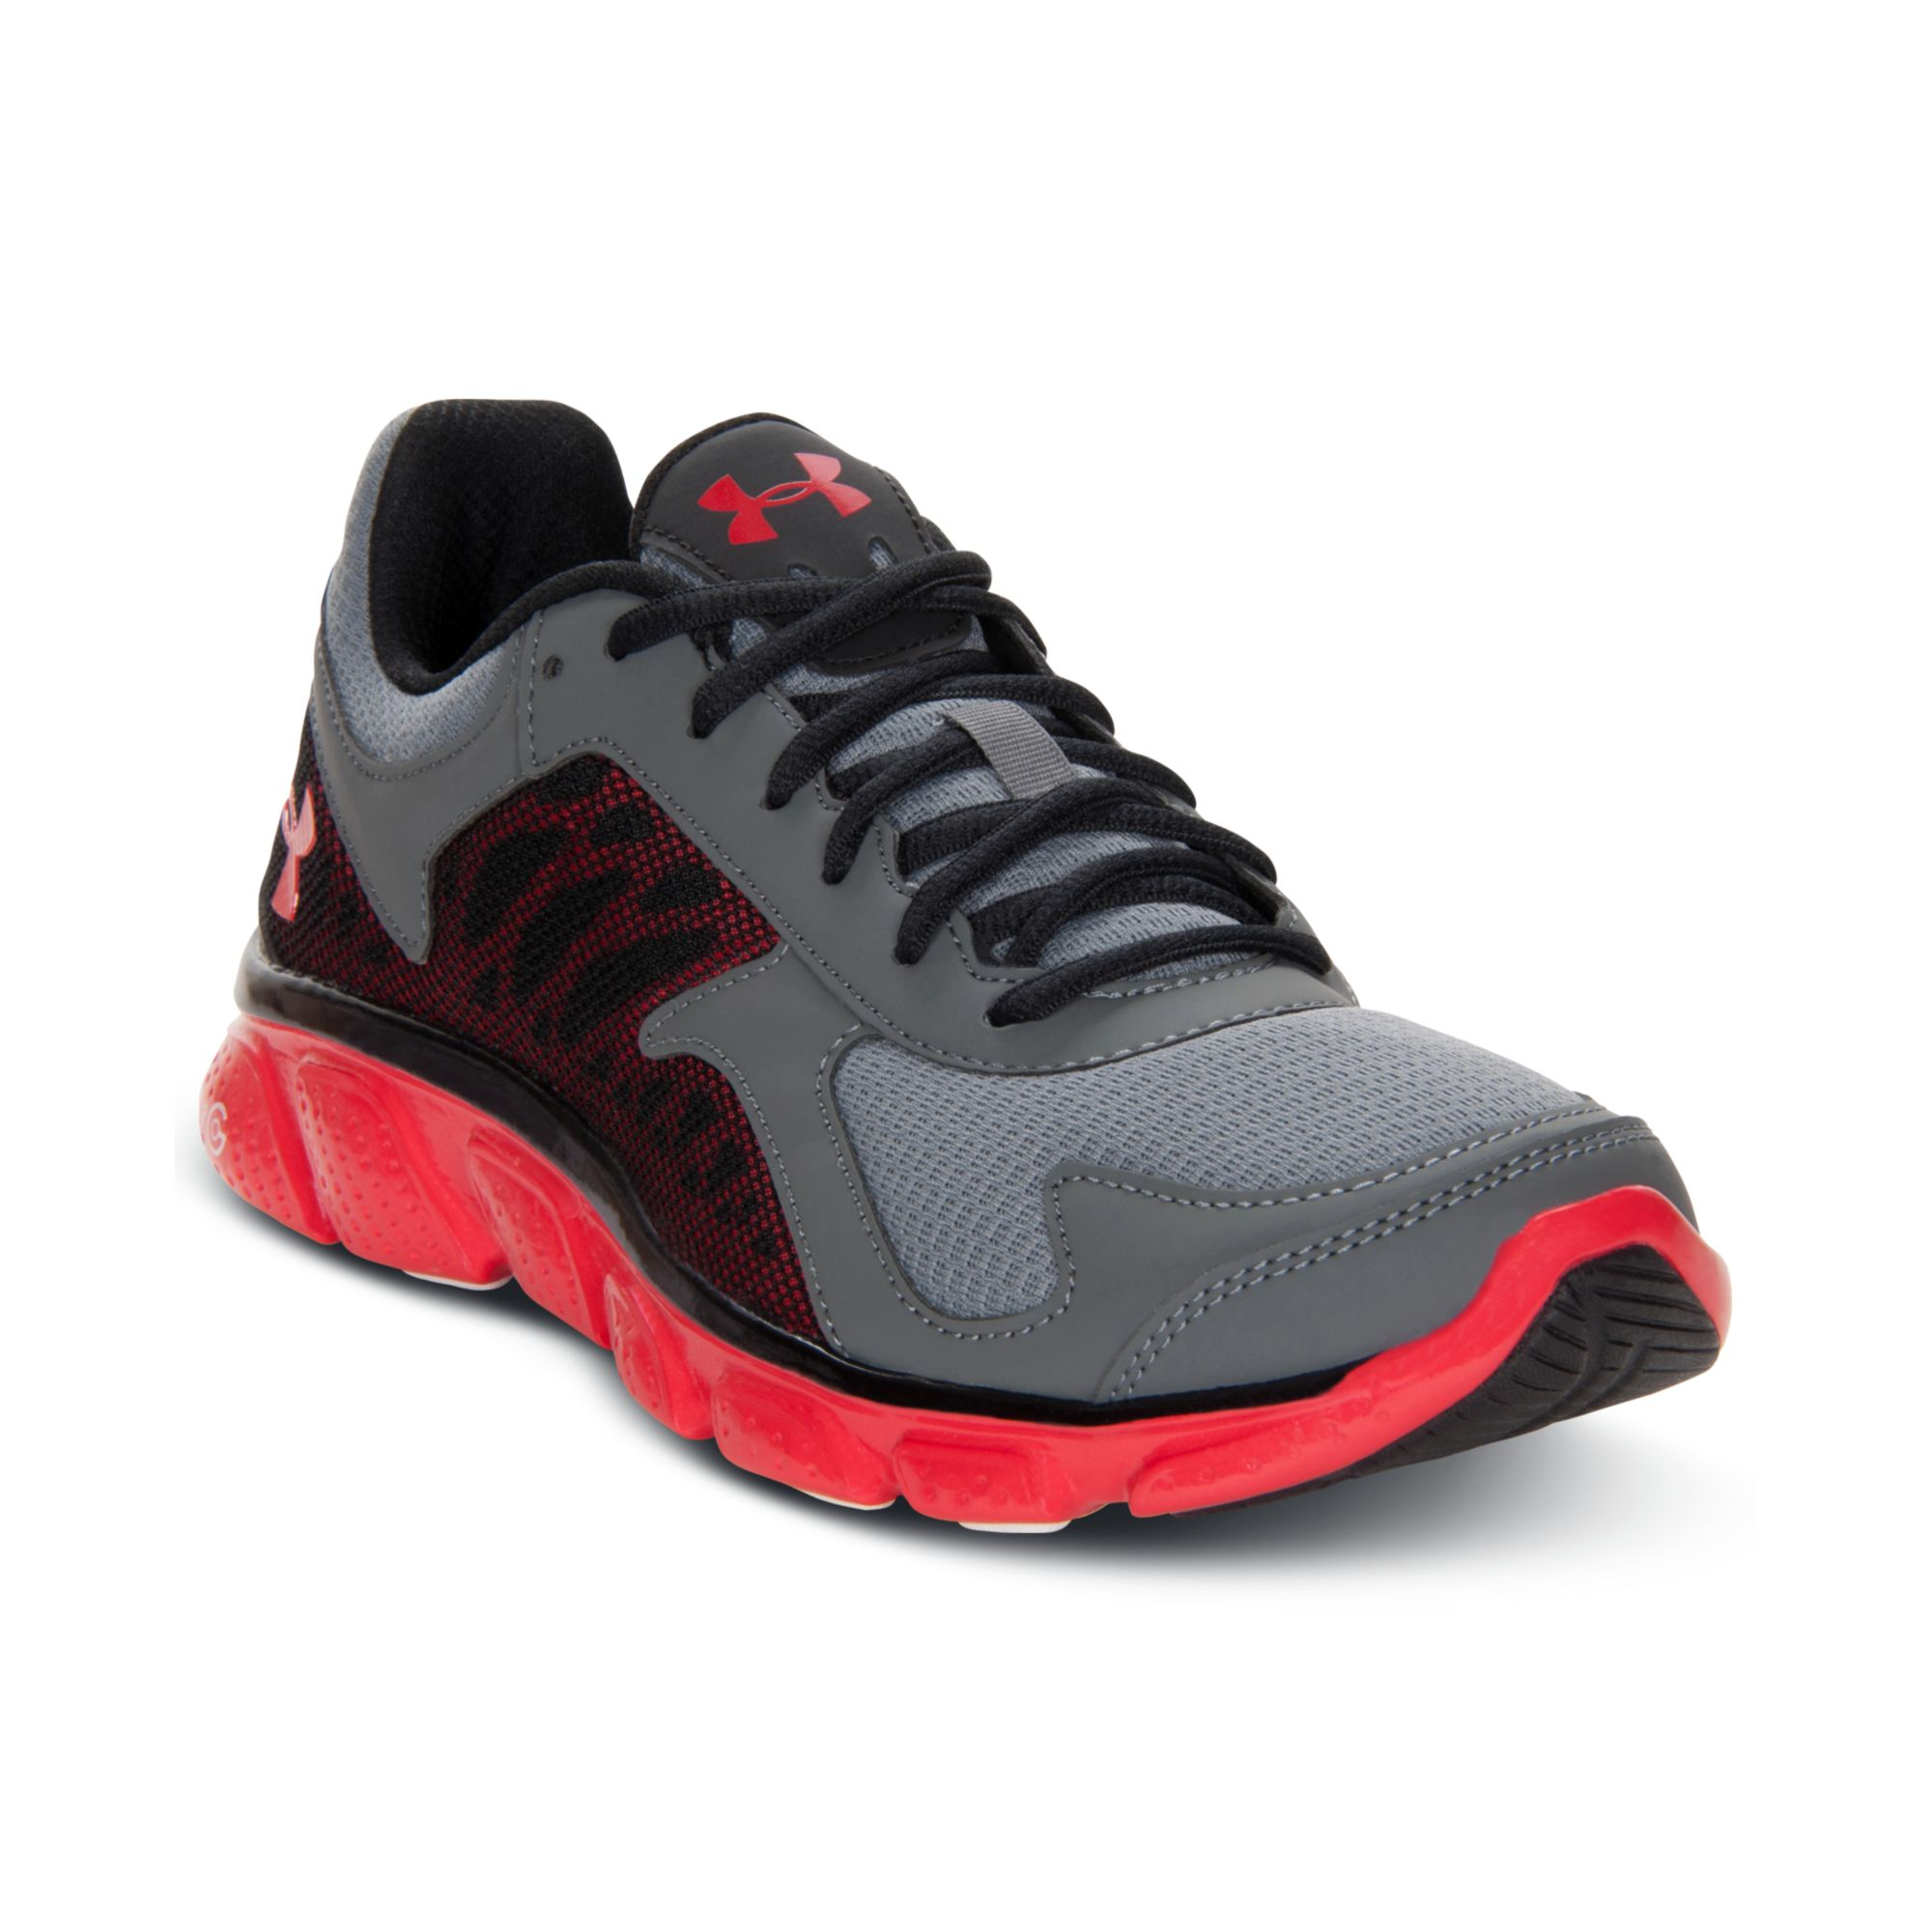 Under Armour Boys Micro G Skulpt Running Shoes in Gray (GRAPHITE/STEEL